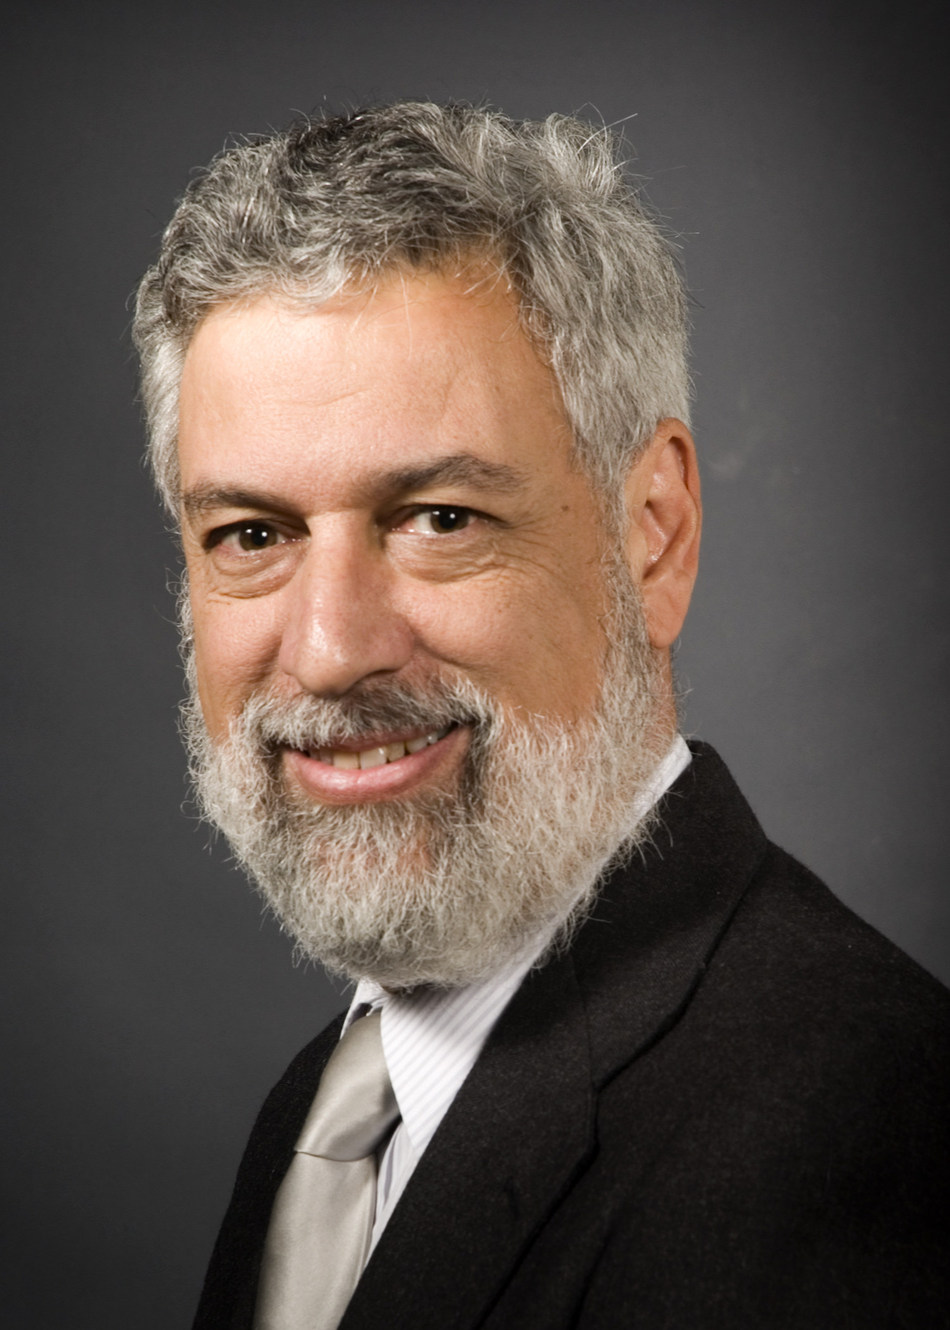 David L. Meryash, MD, The Feinstein Institute for Medical Research